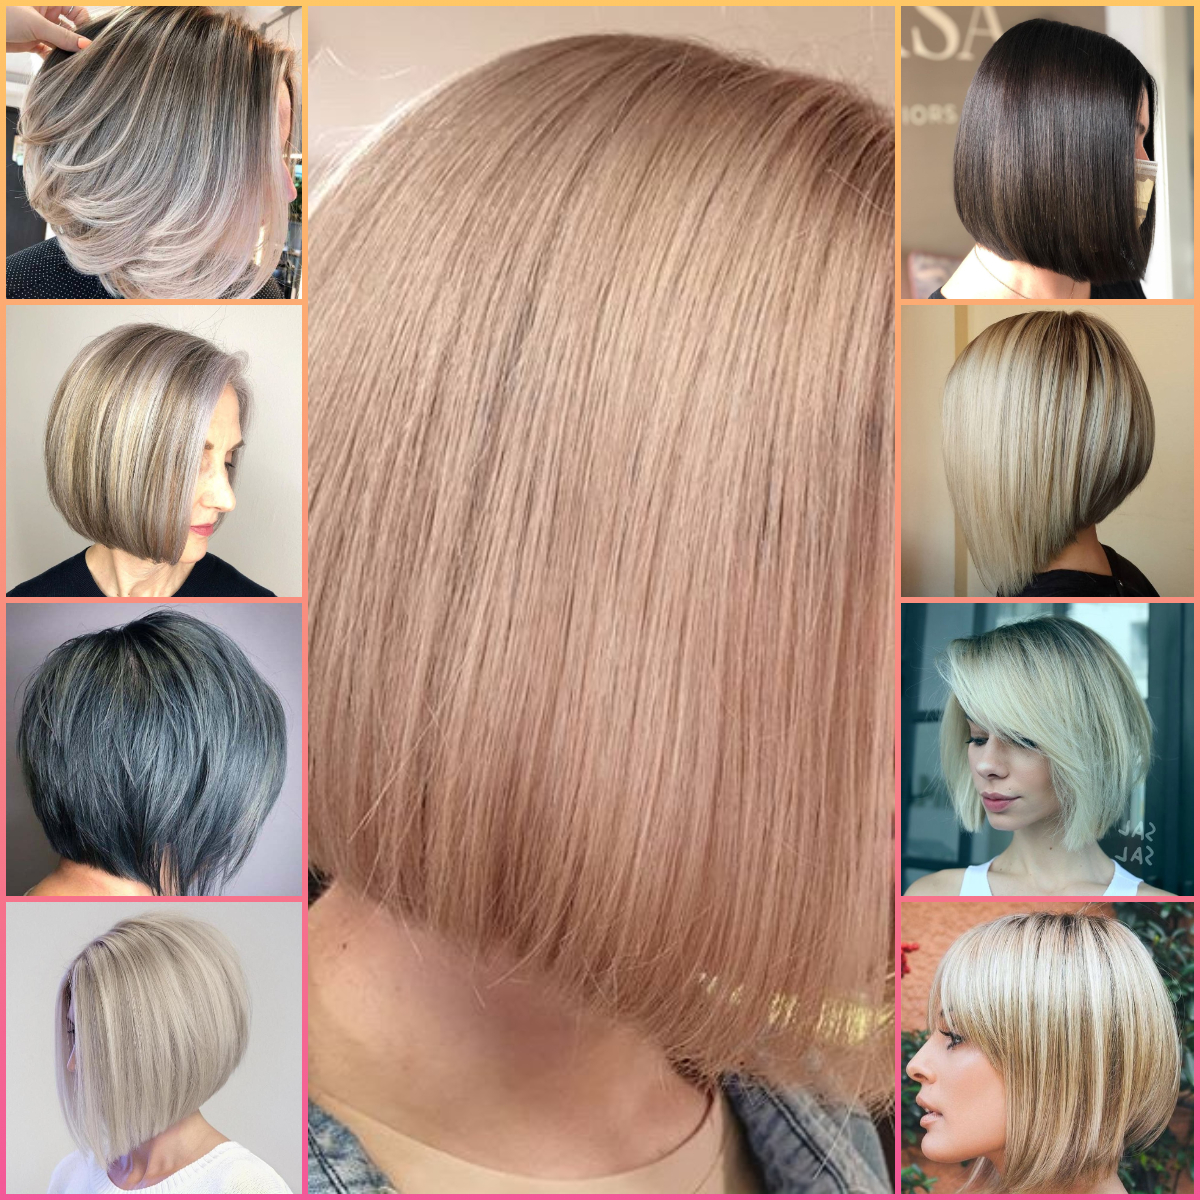 Women Stylish Short Haircuts Top 45 Summer Bob Hairstyles 2020 Images For New Ideas